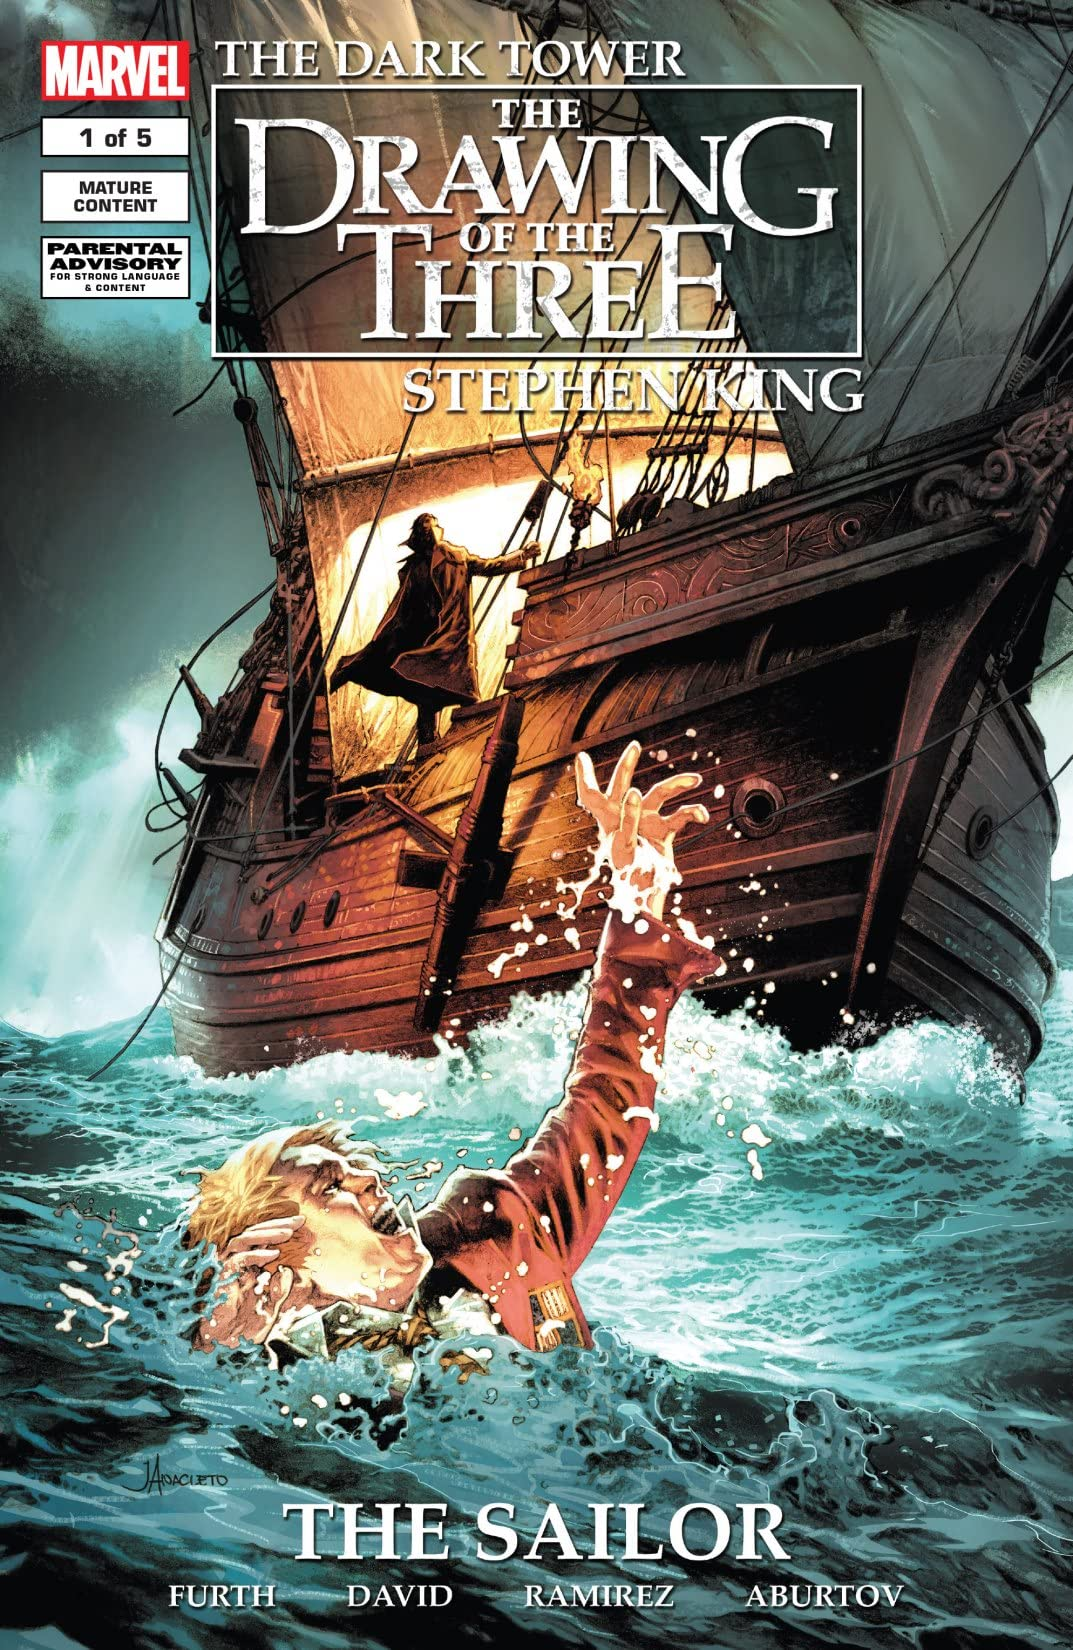 Dark Tower: The Drawing Of The Three - The Sailor #1 (of 5)